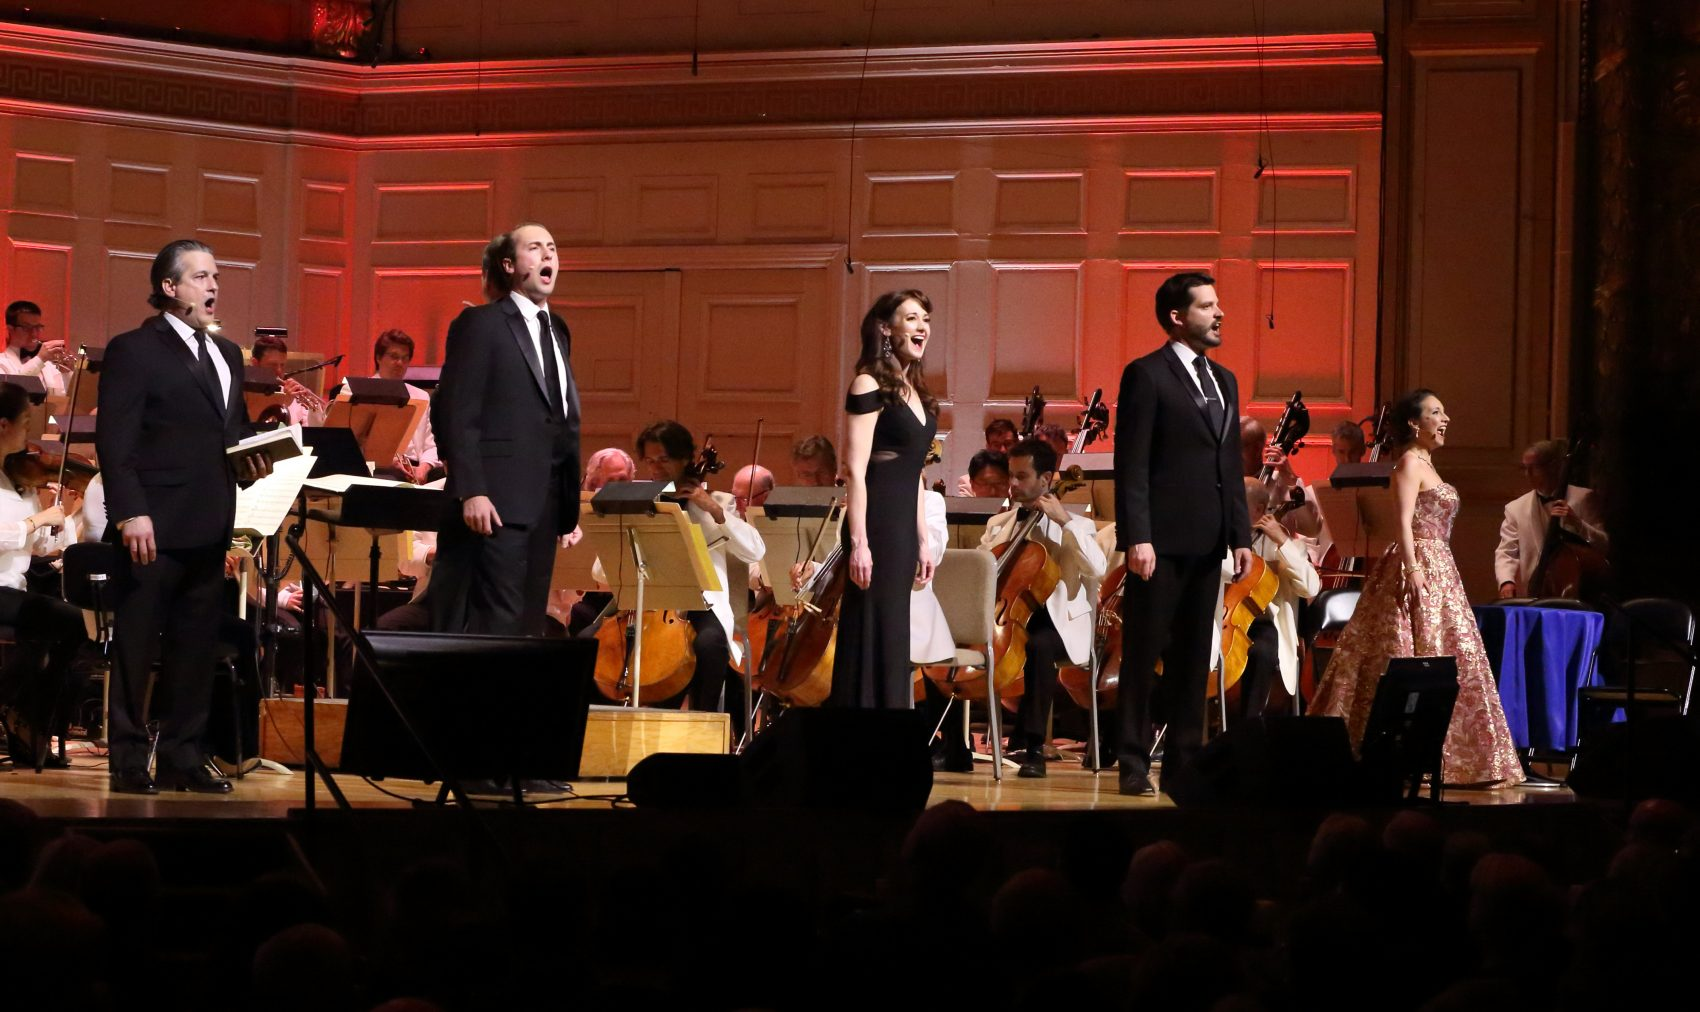 """Matthew DiBattista, Andrew Tighe, Aimee Doherty and David McFerrin perform music from Leonard Bernstine's """"Candide"""" with the Boston Pops on May 5, 2018. (Courtesy Hilary Scott)"""